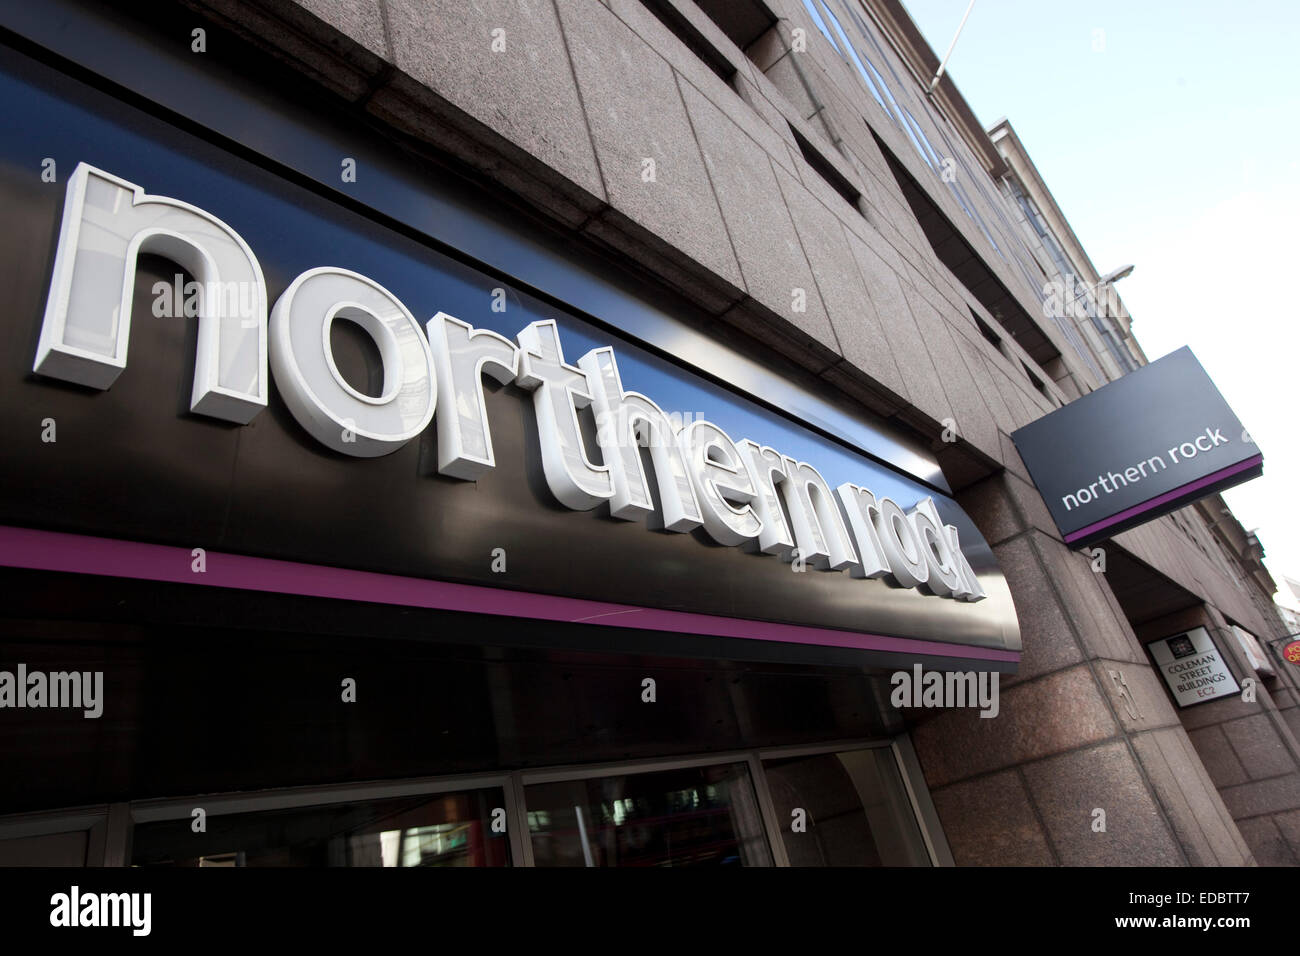 Exterior of a Northern Rock branch. - Stock Image